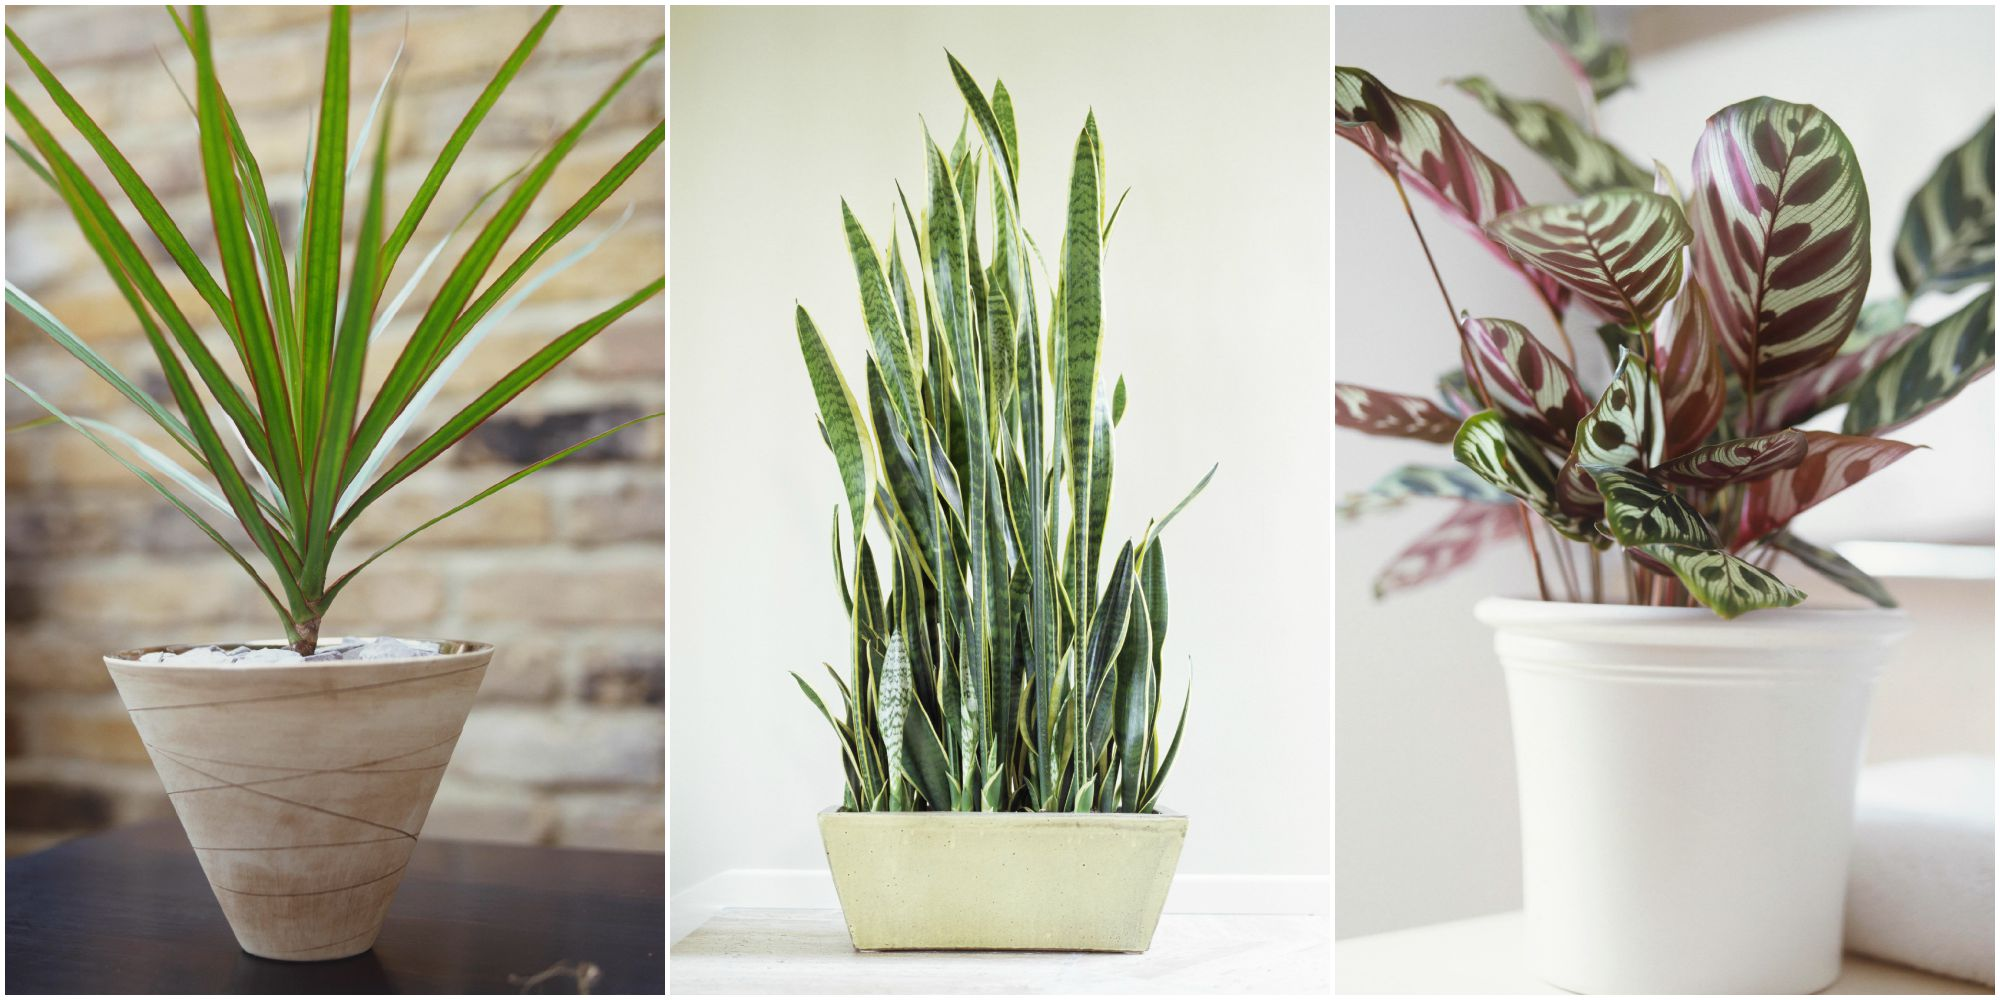 10-low-light-needed-houseplants cover